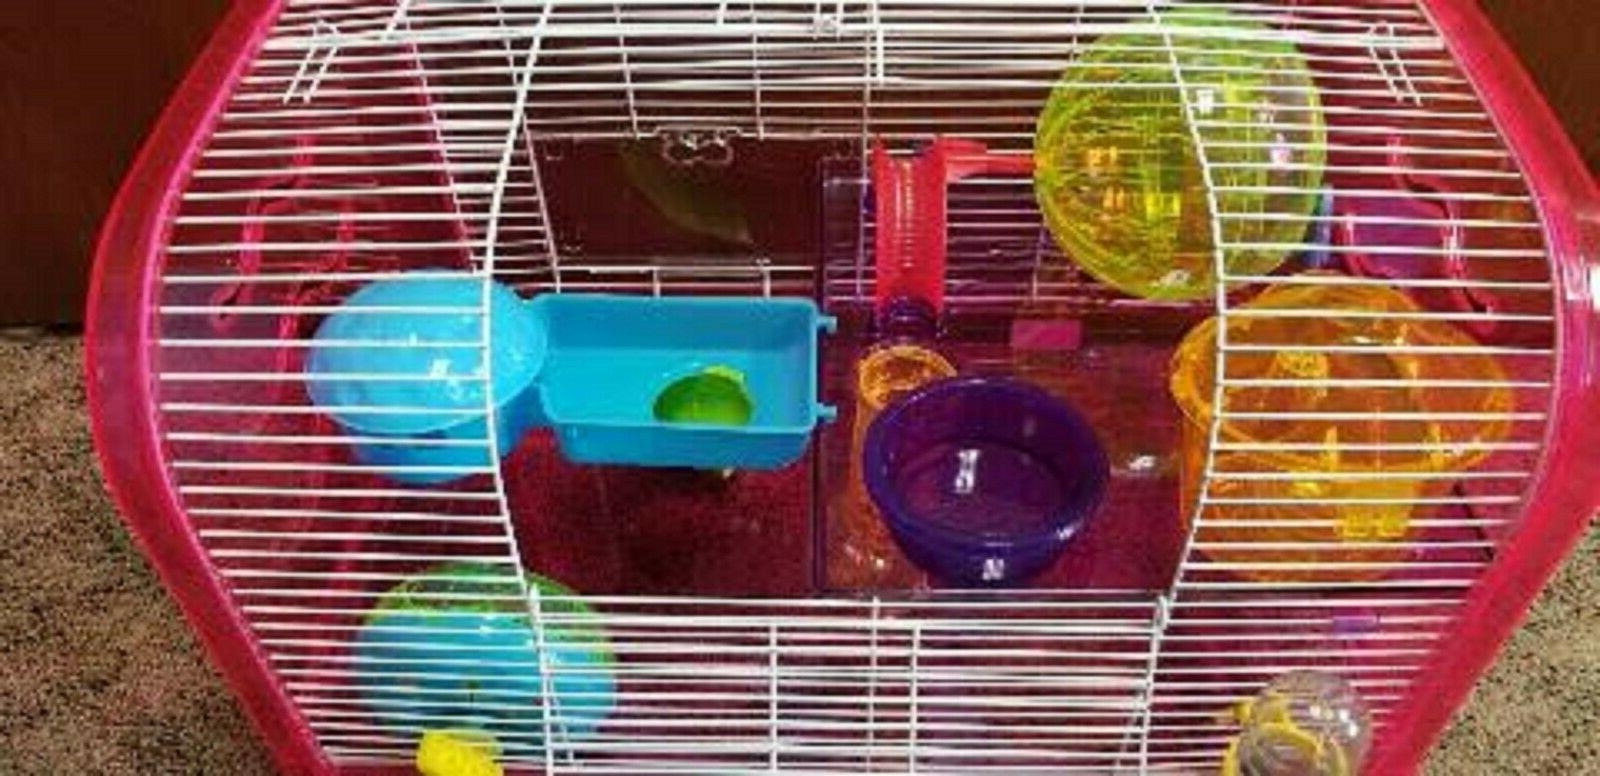 H1812A DWARF HAMSTER SO MANY FUN ACTIVES FOR